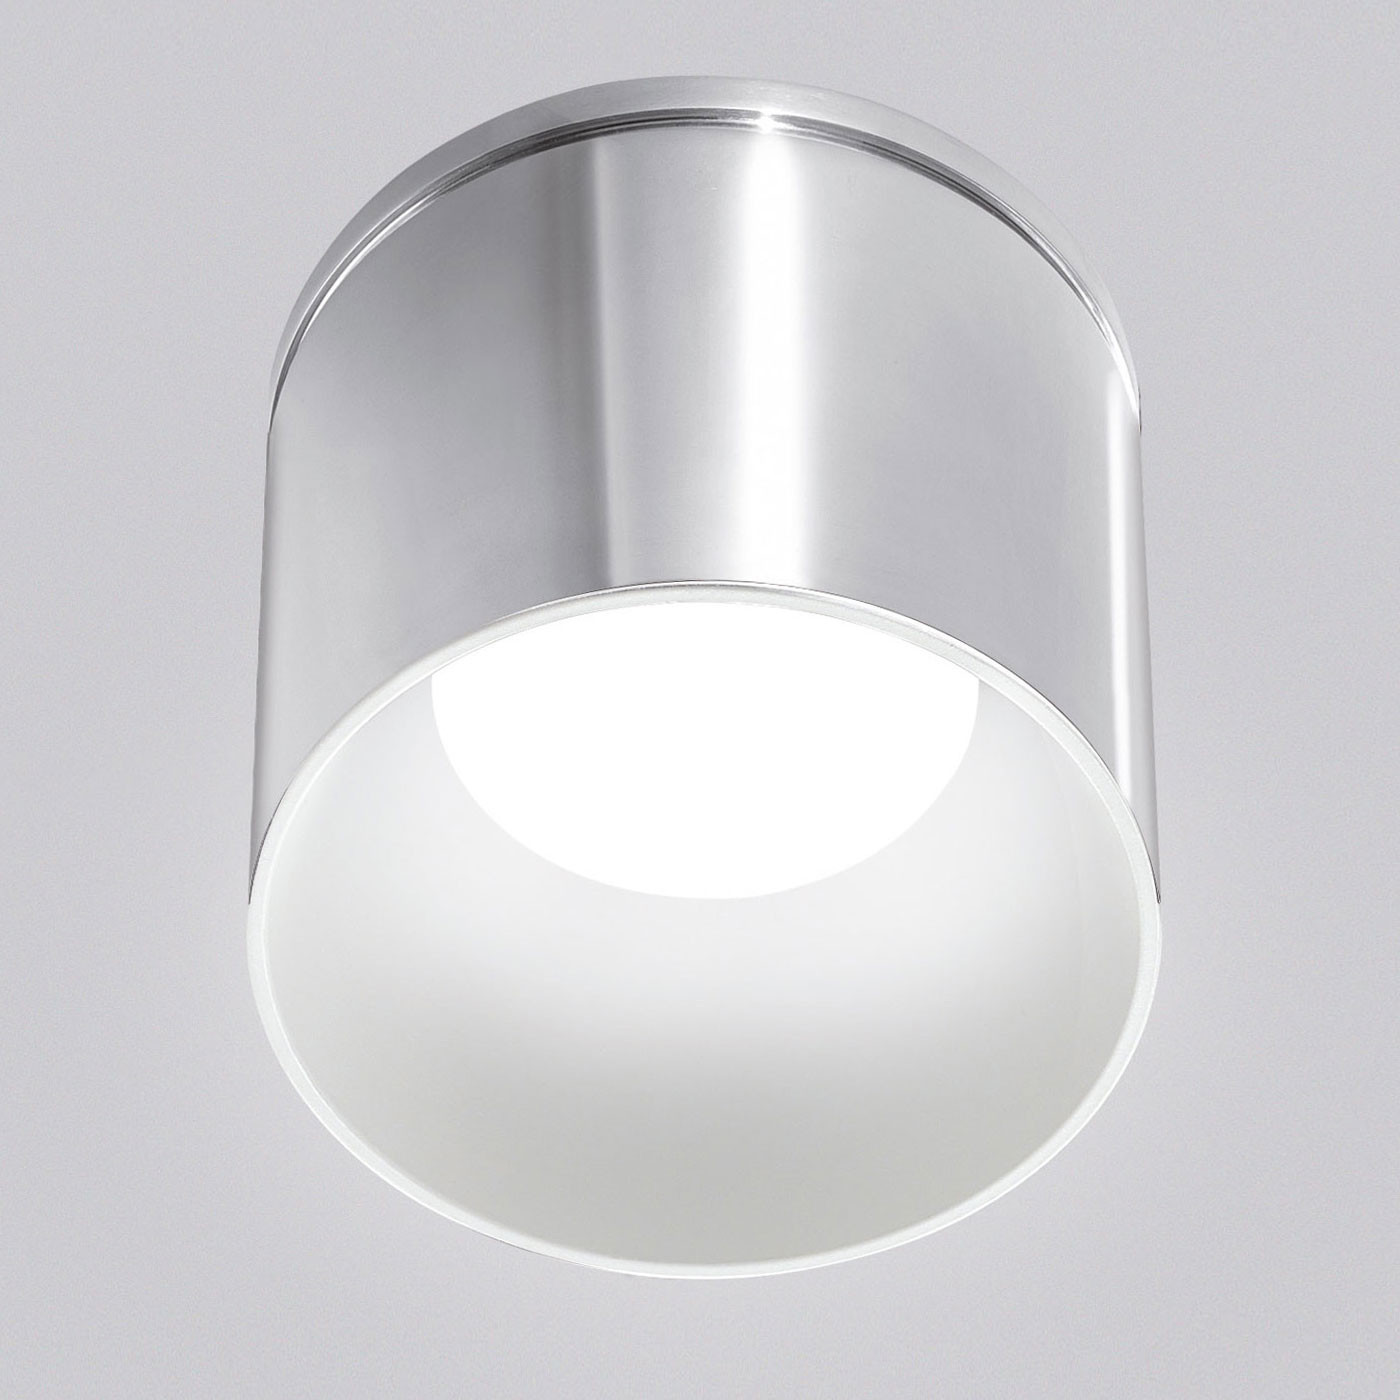 Icone Kone 5p Ceiling Lamp